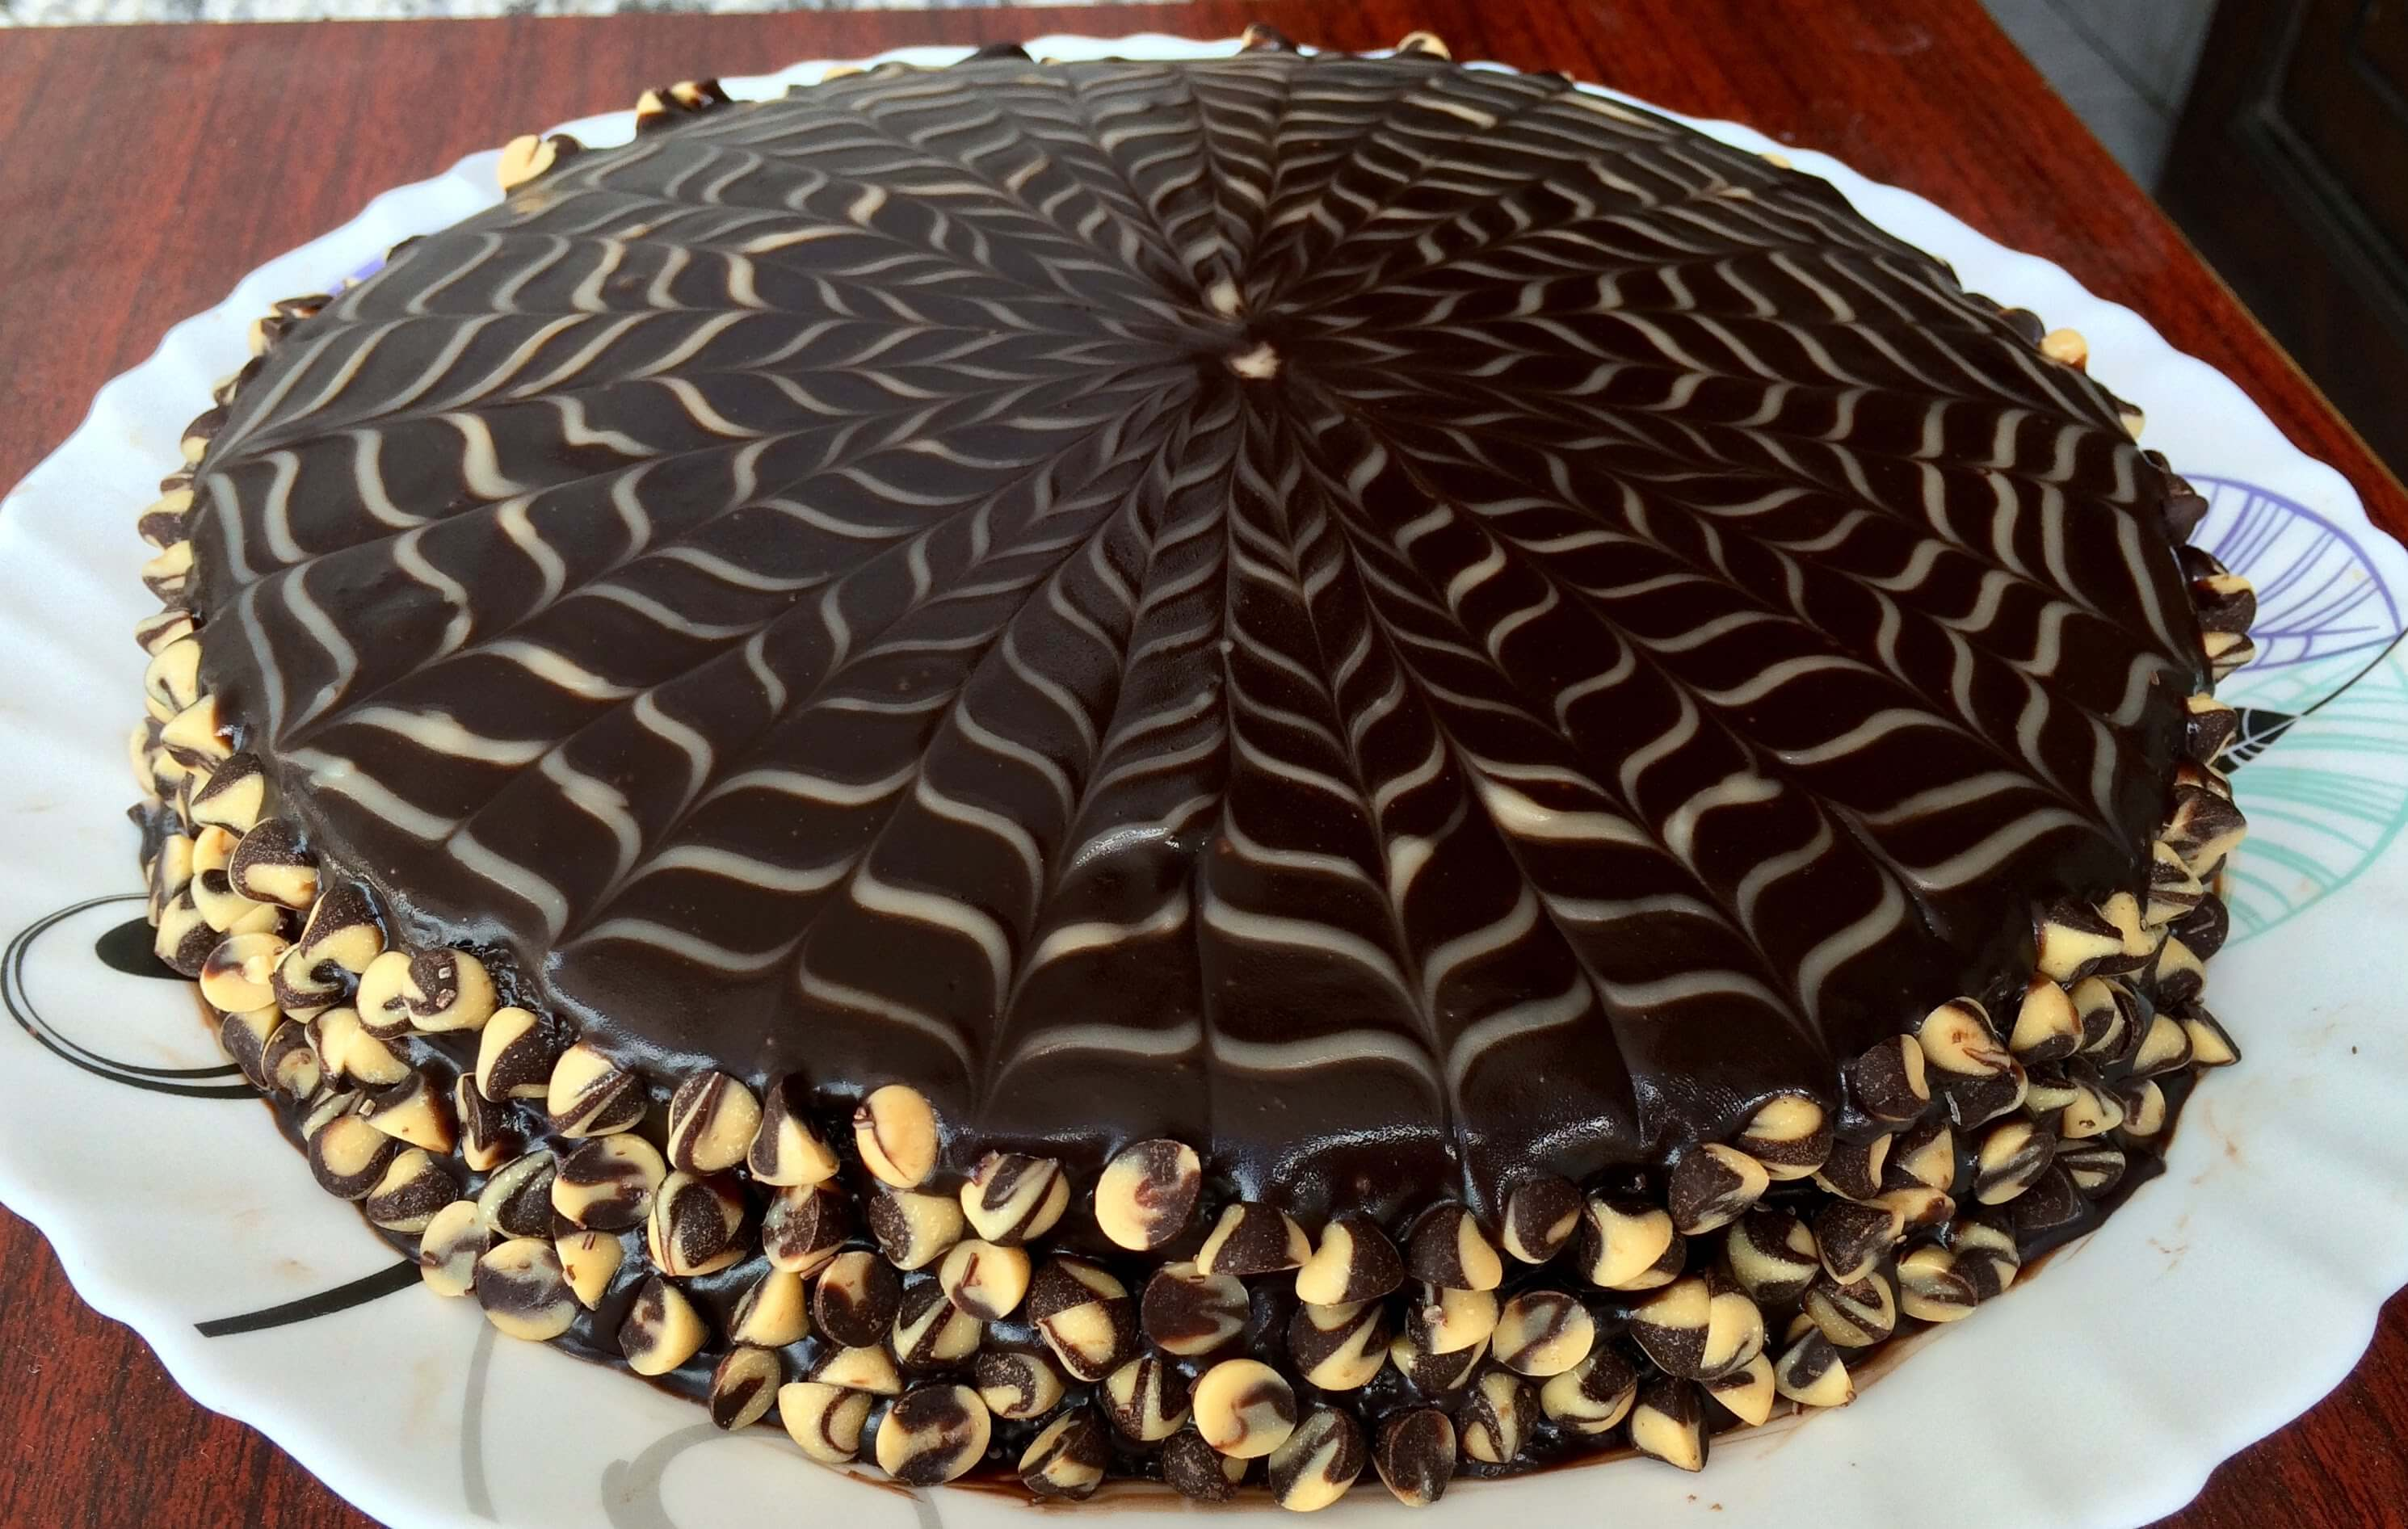 Mouthwatering Chocolate Cake With Ganache